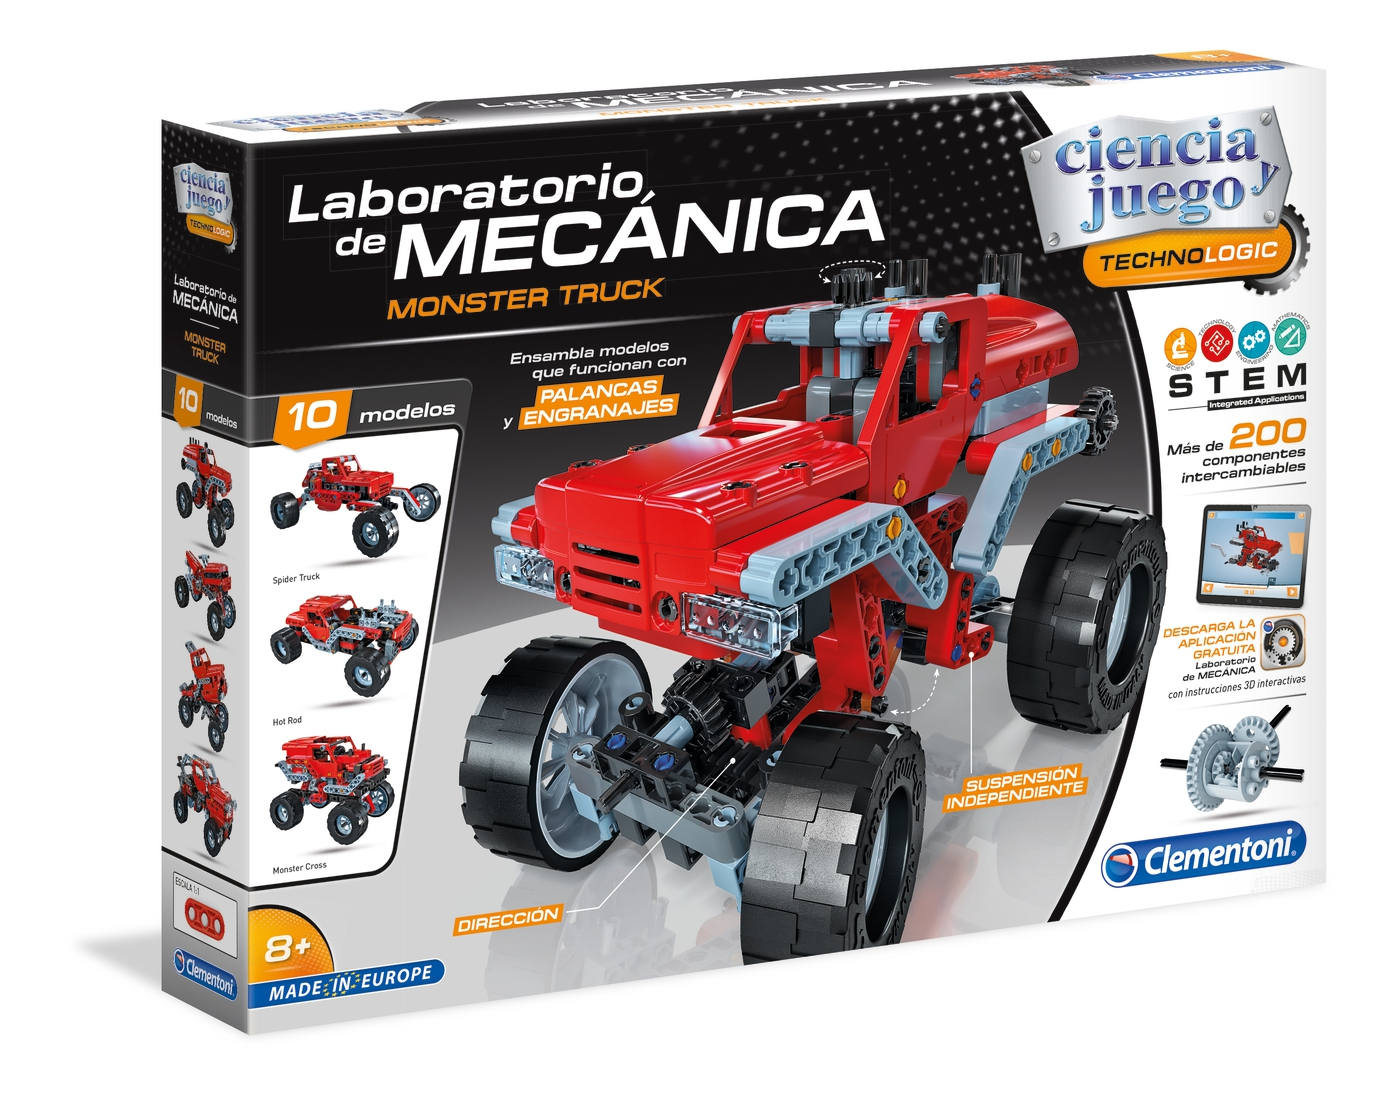 LABORATORIO DE  MECANICA MONSTER TRUCK 55277